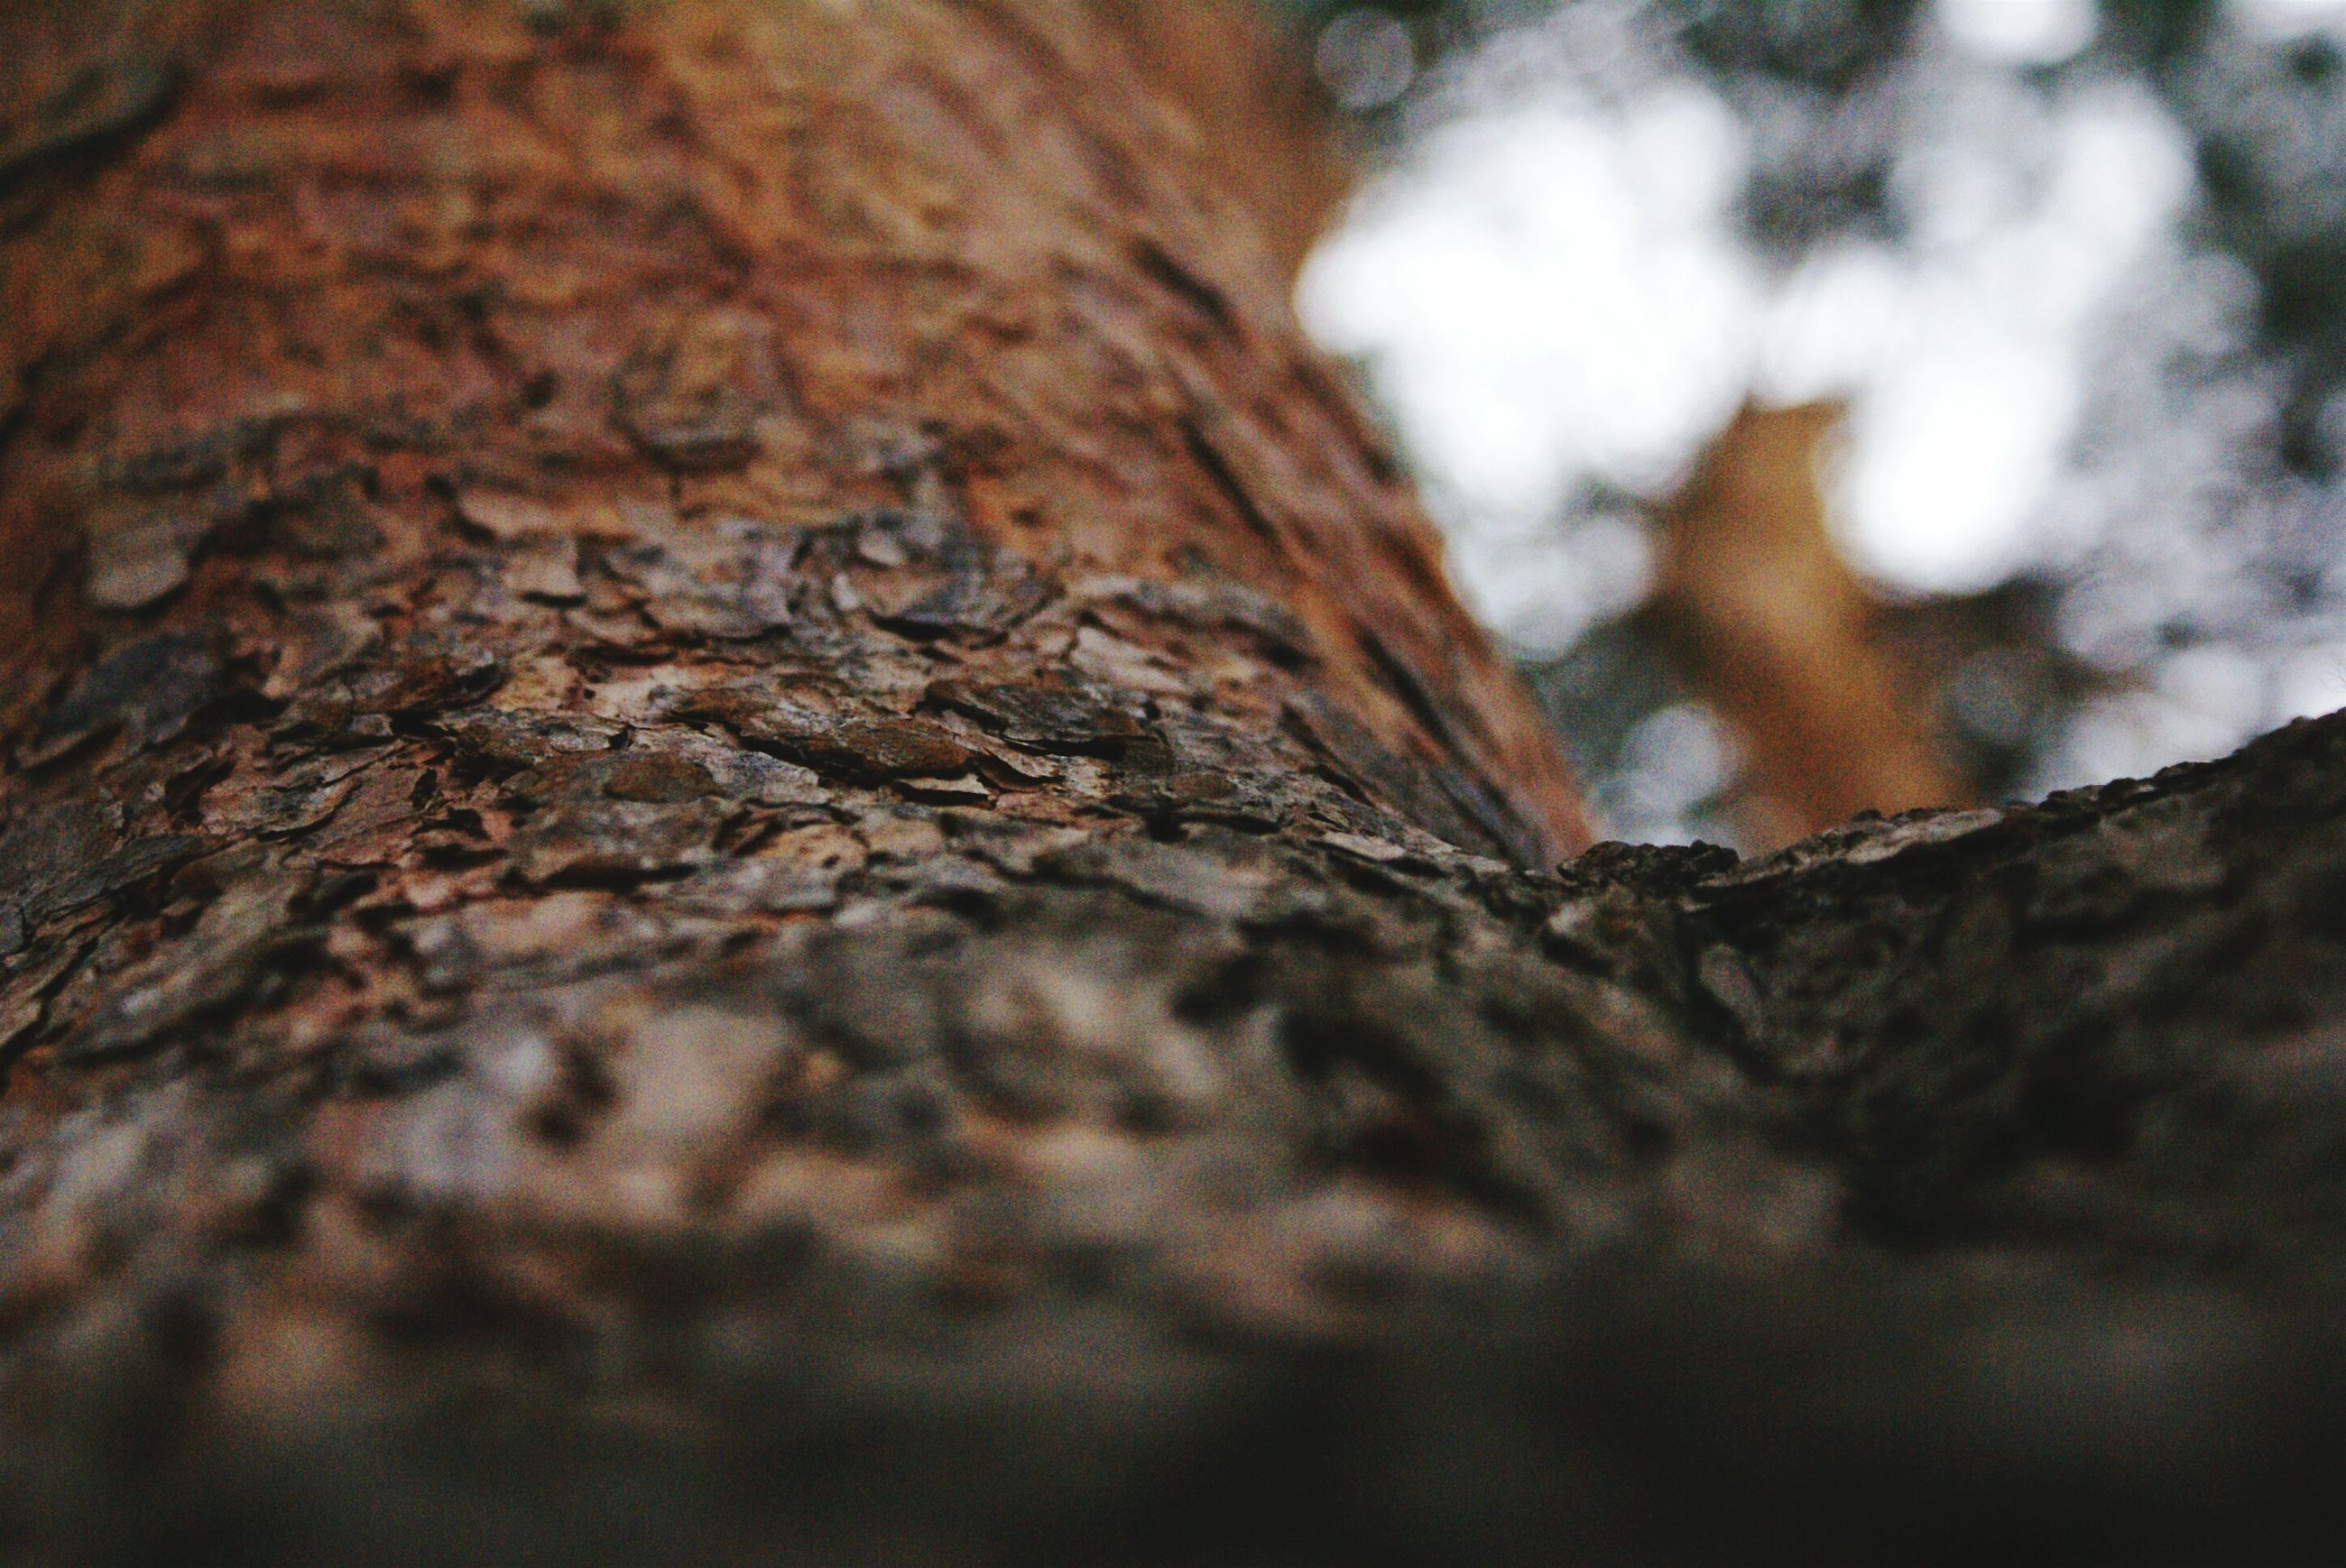 close-up, textured, selective focus, focus on foreground, low angle view, tree, wood - material, rough, pattern, tree trunk, outdoors, day, nature, no people, sky, part of, brown, bark, old, detail